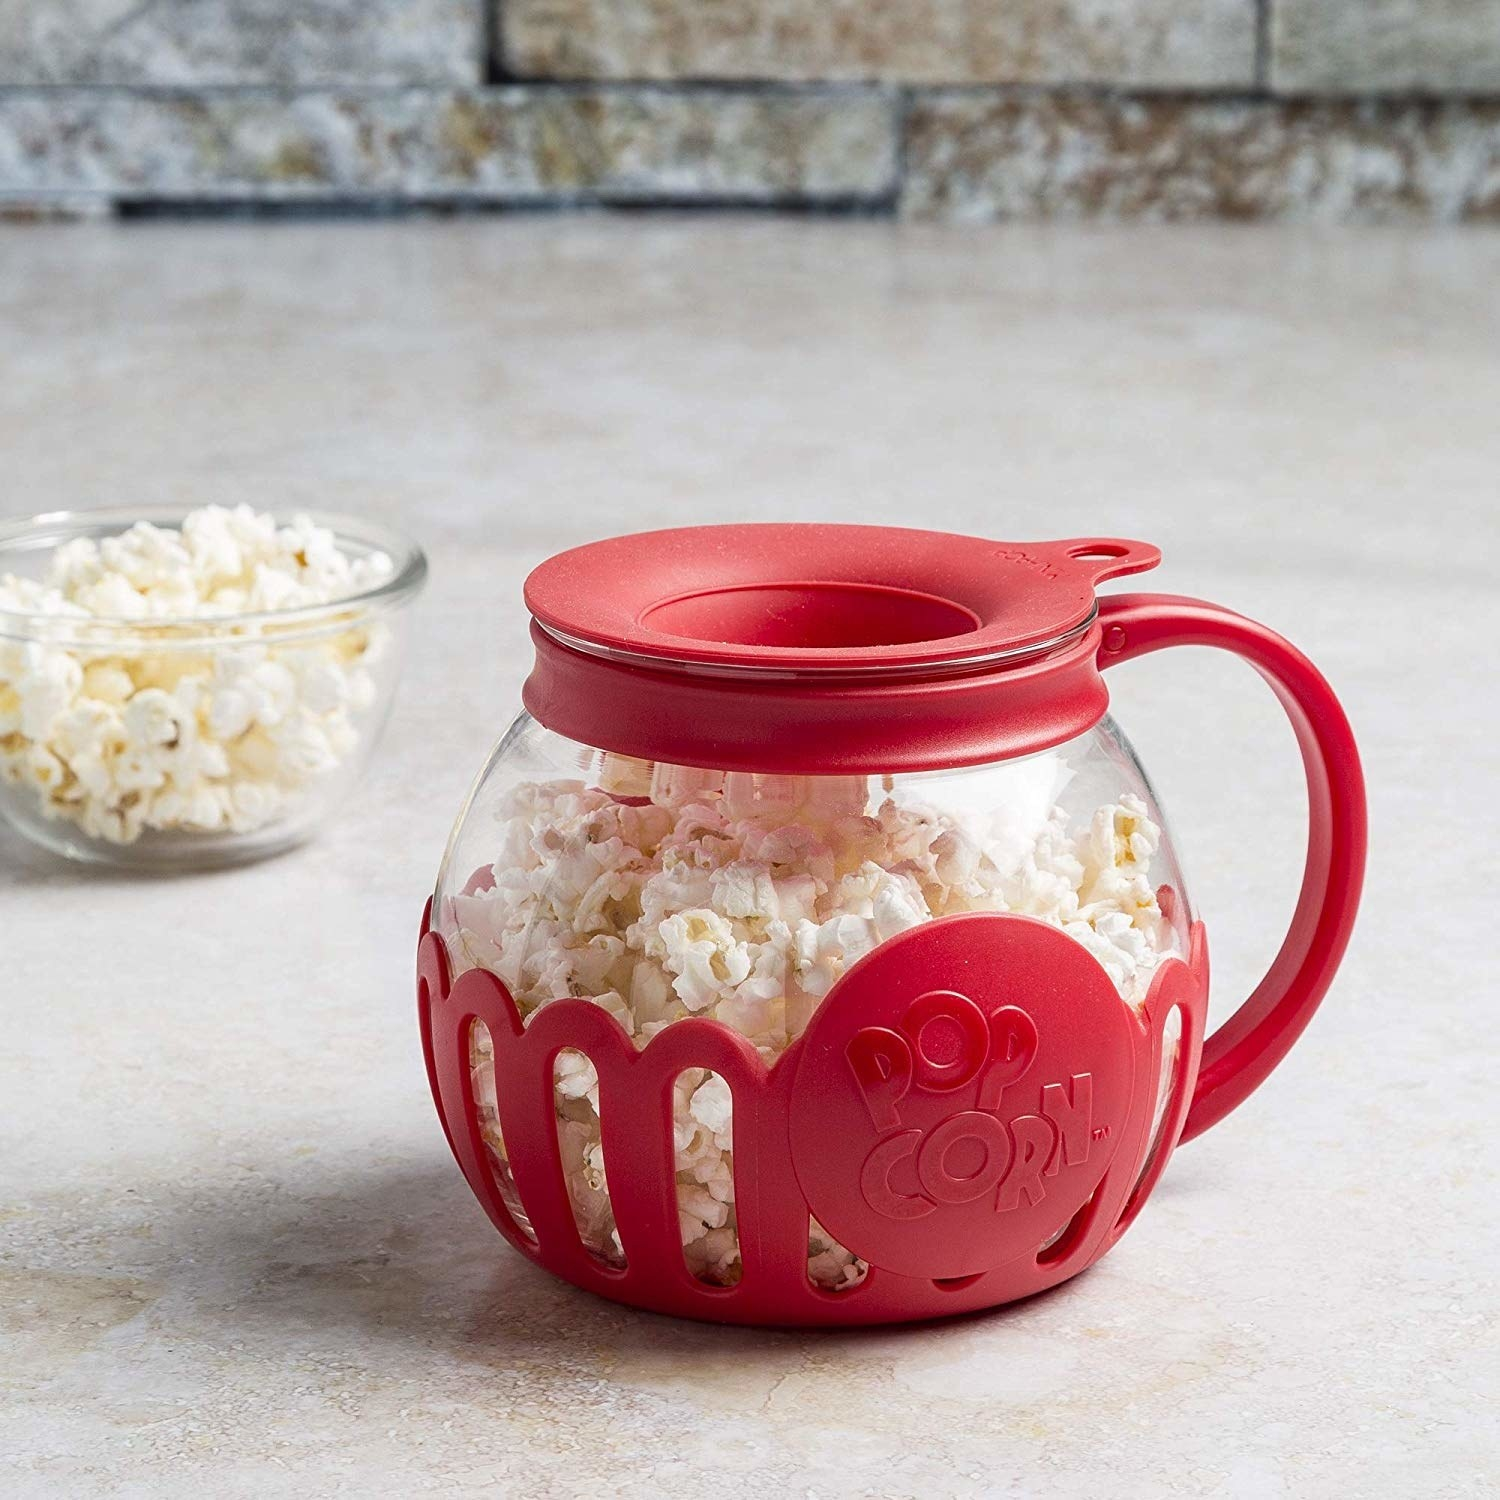 A large mug that's lined with silicone and has popcorn inside